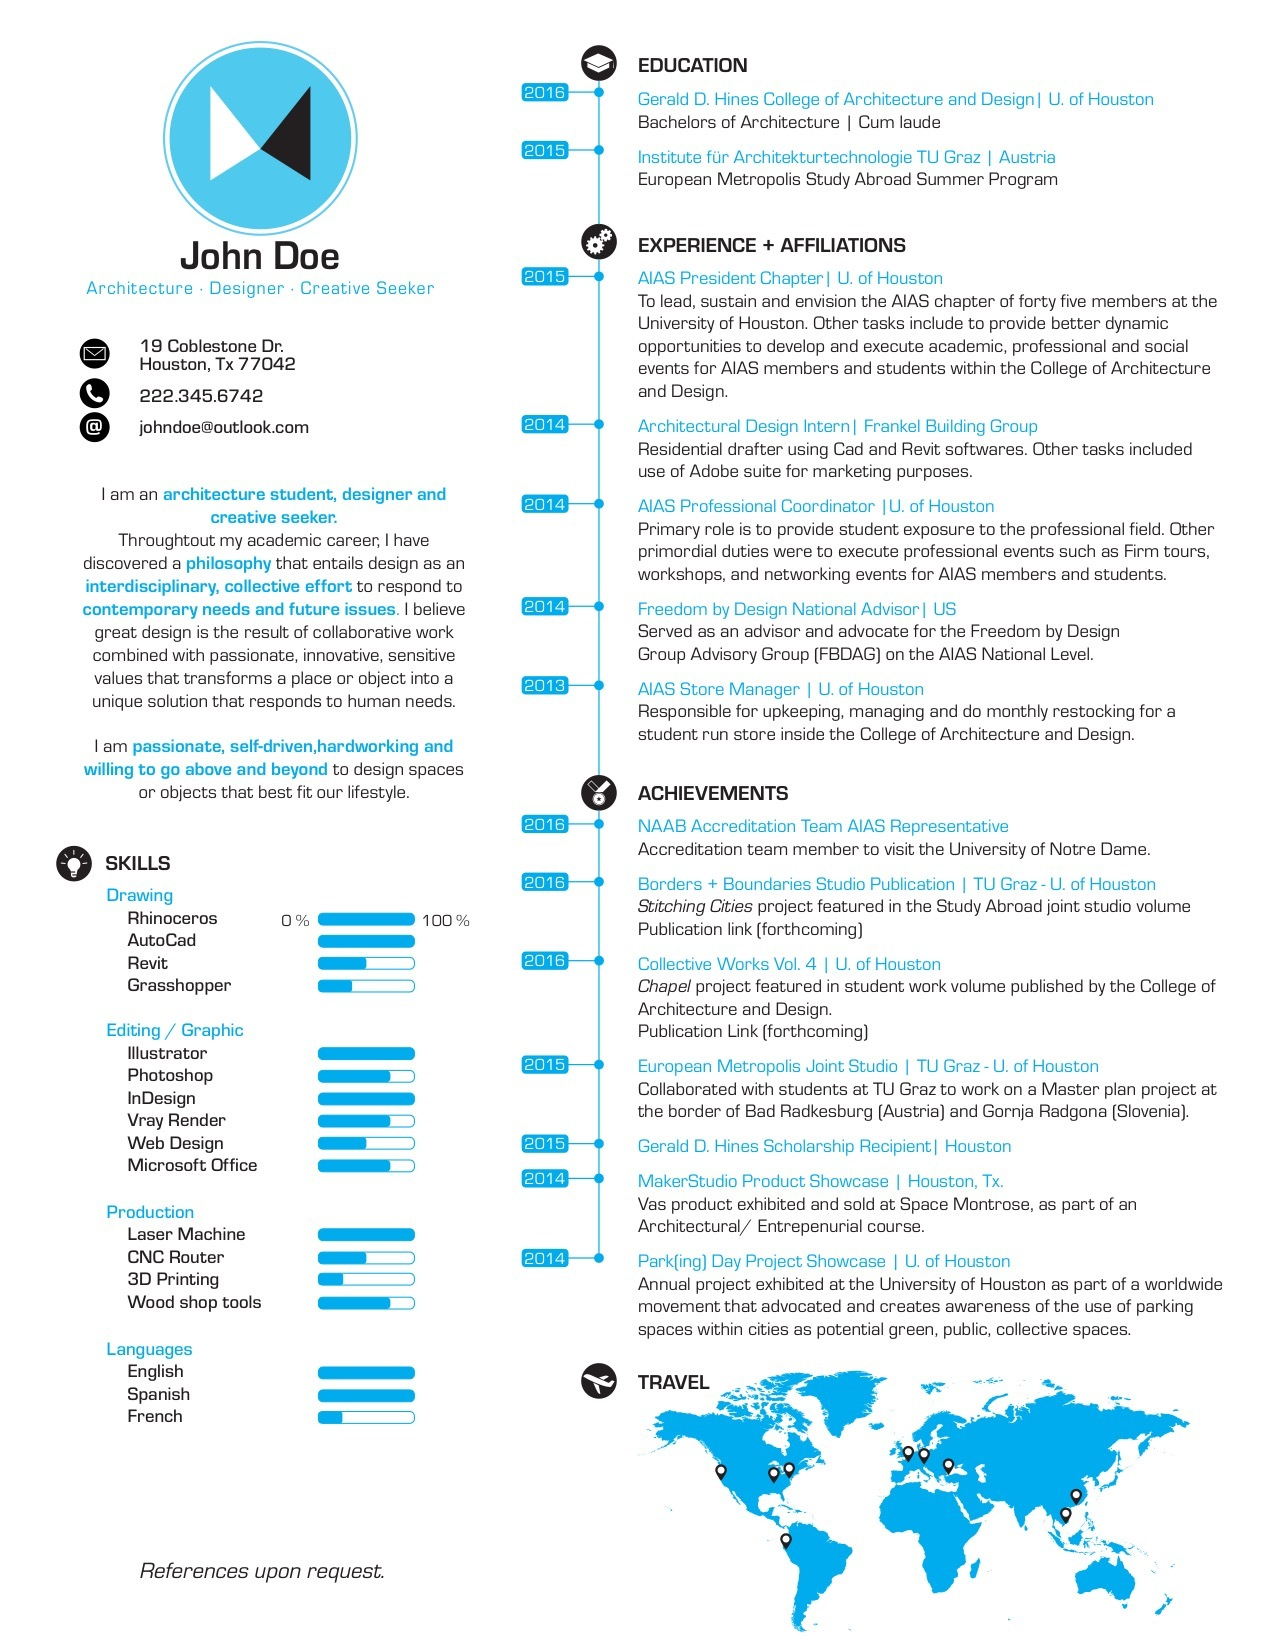 Resume architect idealstalist resume architect altavistaventures Gallery